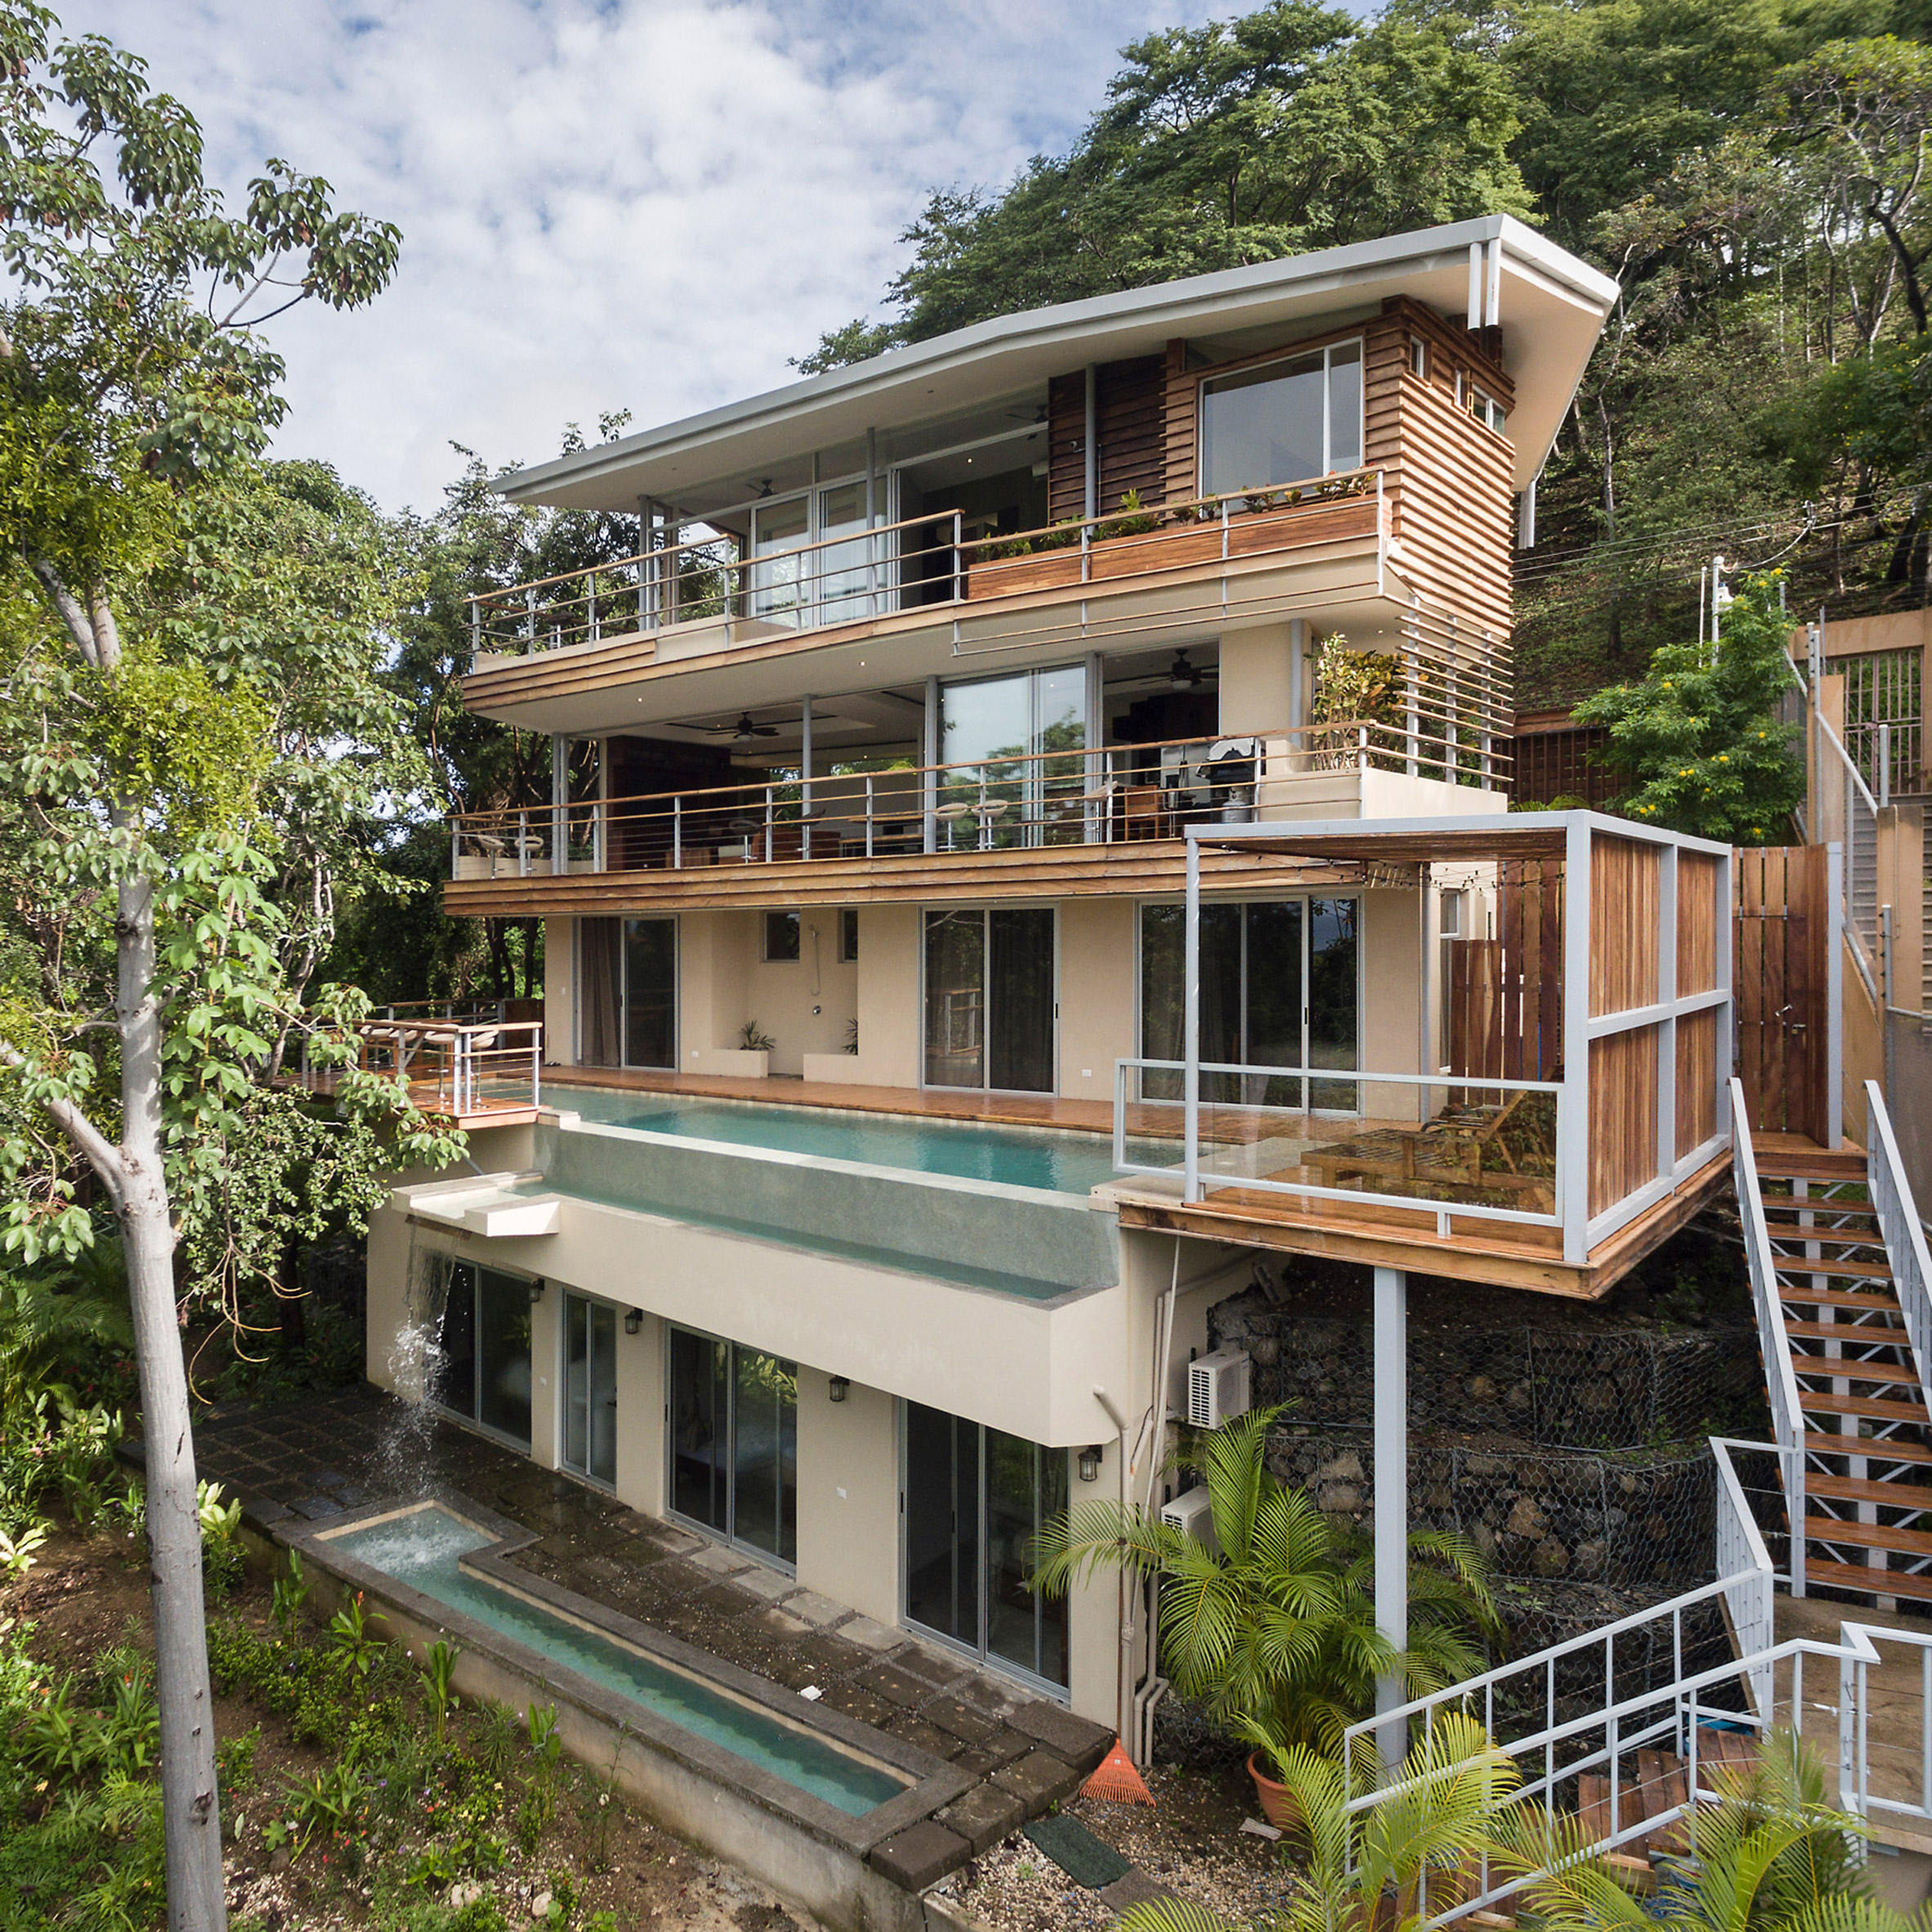 Waterfall architecture: Waterfall house by LSD Architects